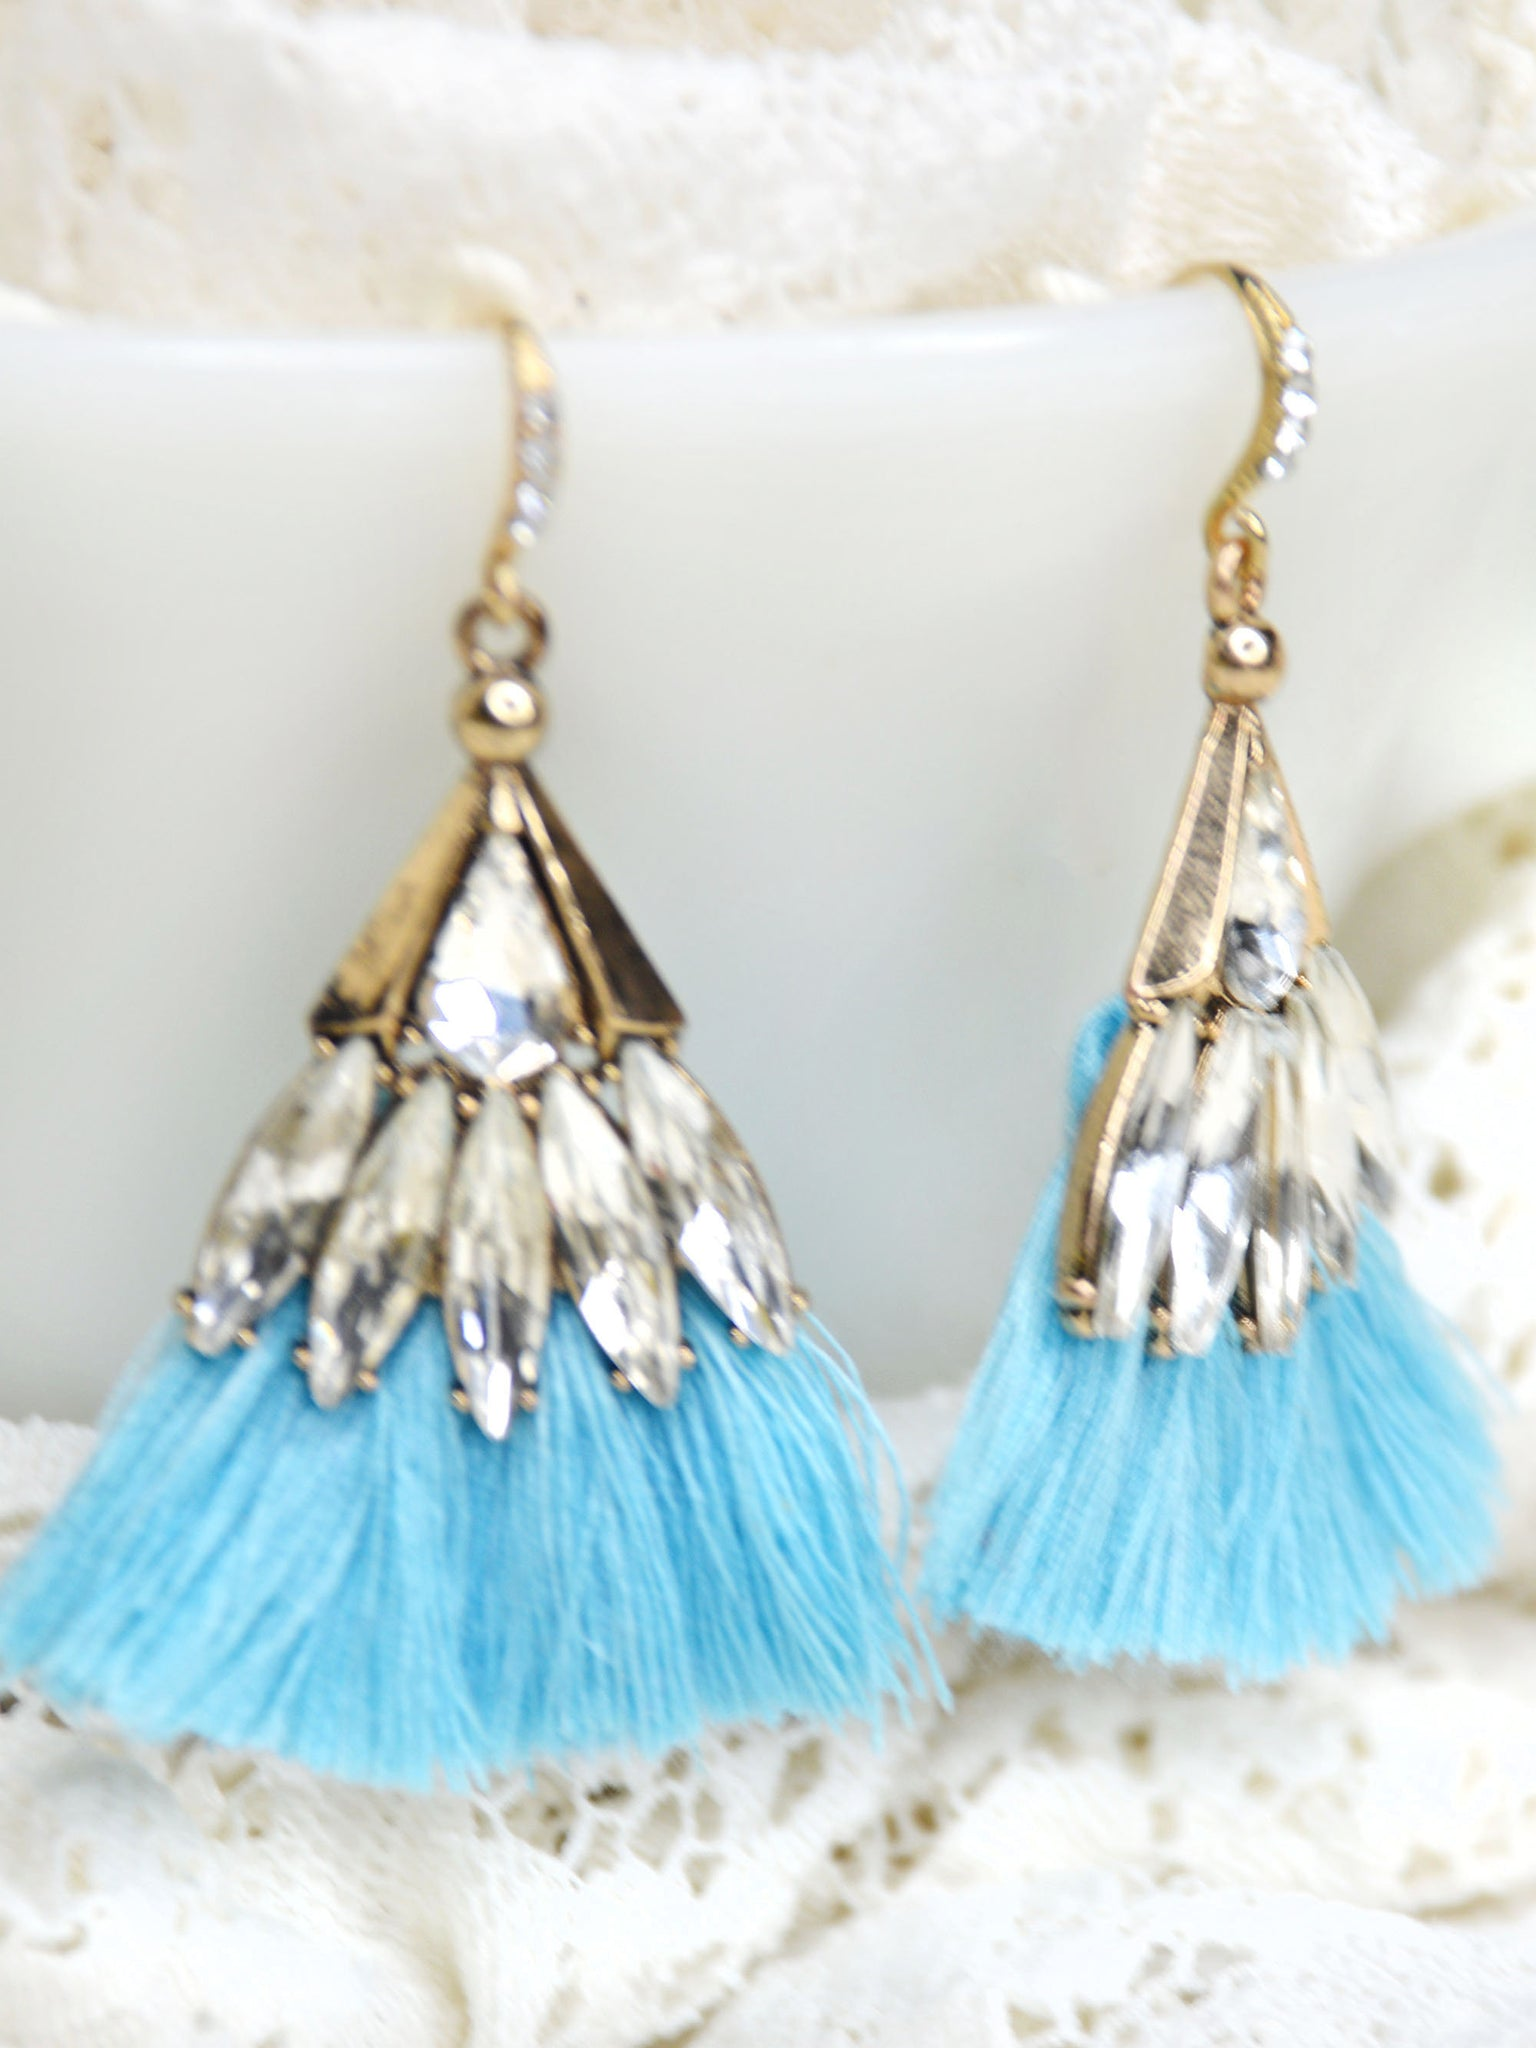 Gold and blue fringe earrings with clear crystals.